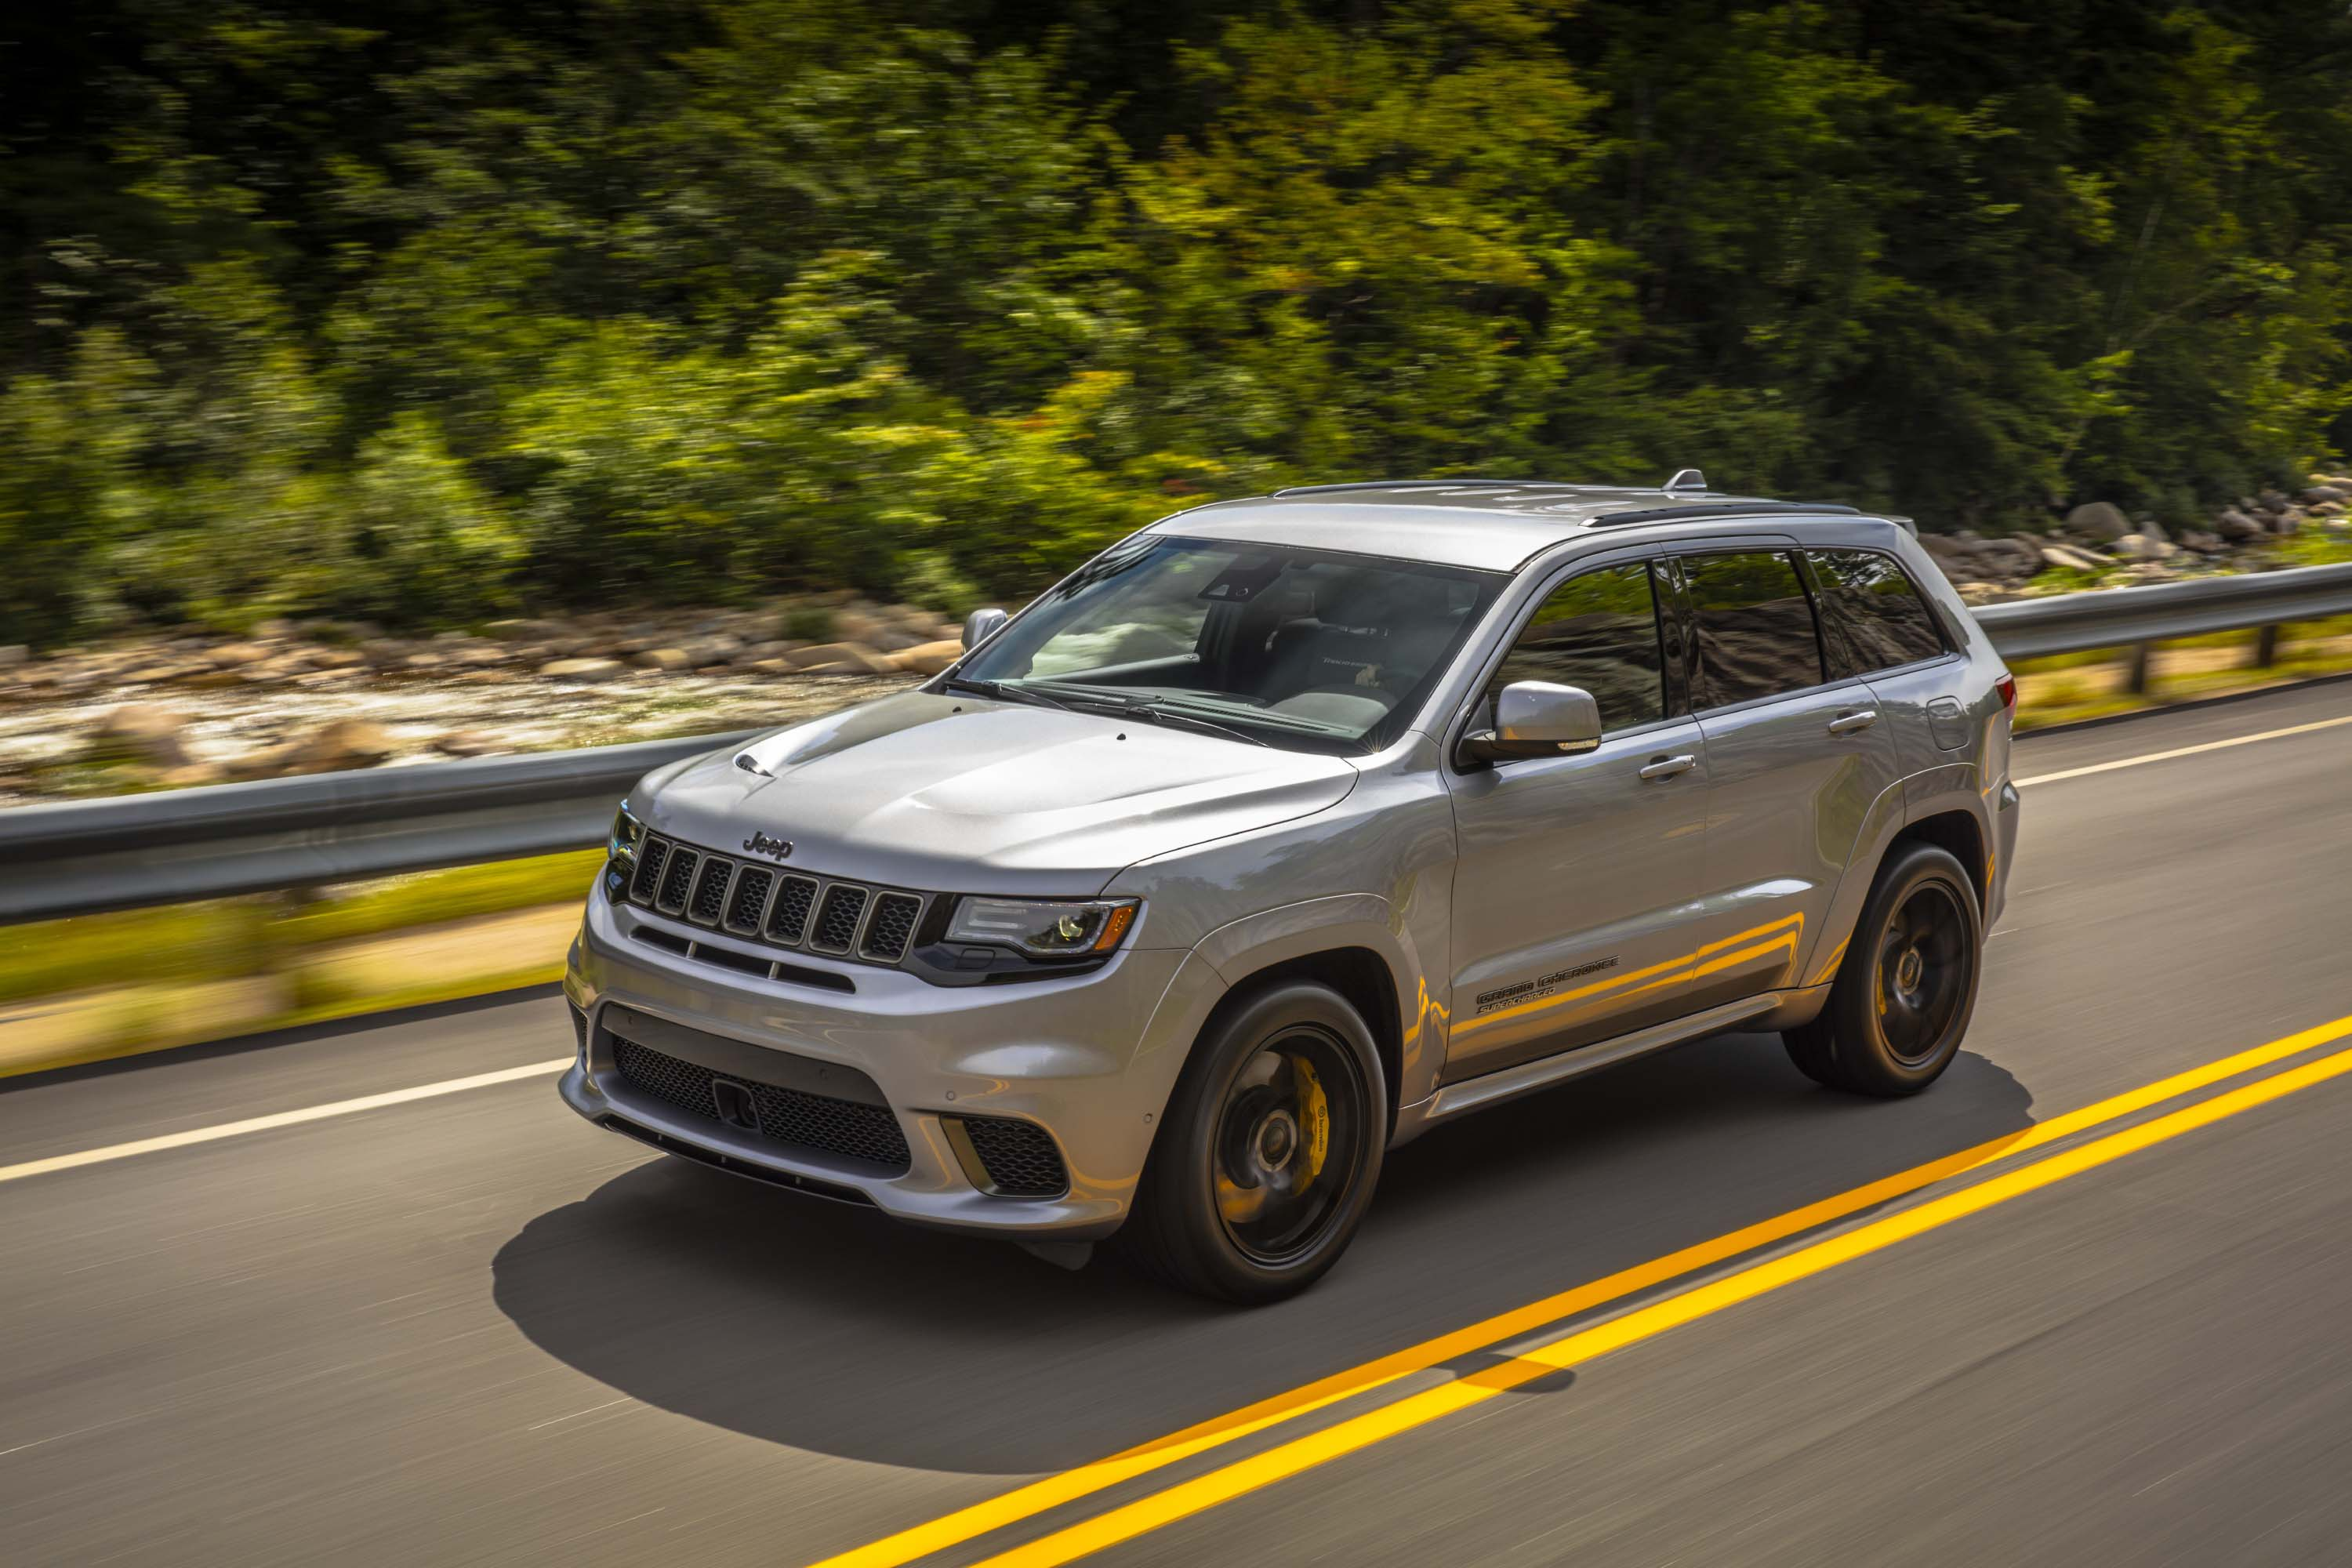 2020 Jeep Grand Cherokee for Sale near Fort Lee, NJ